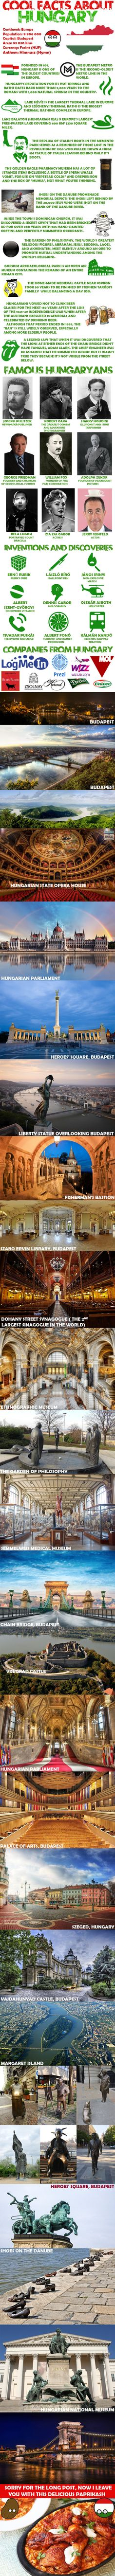 Cool Facts About Hungary